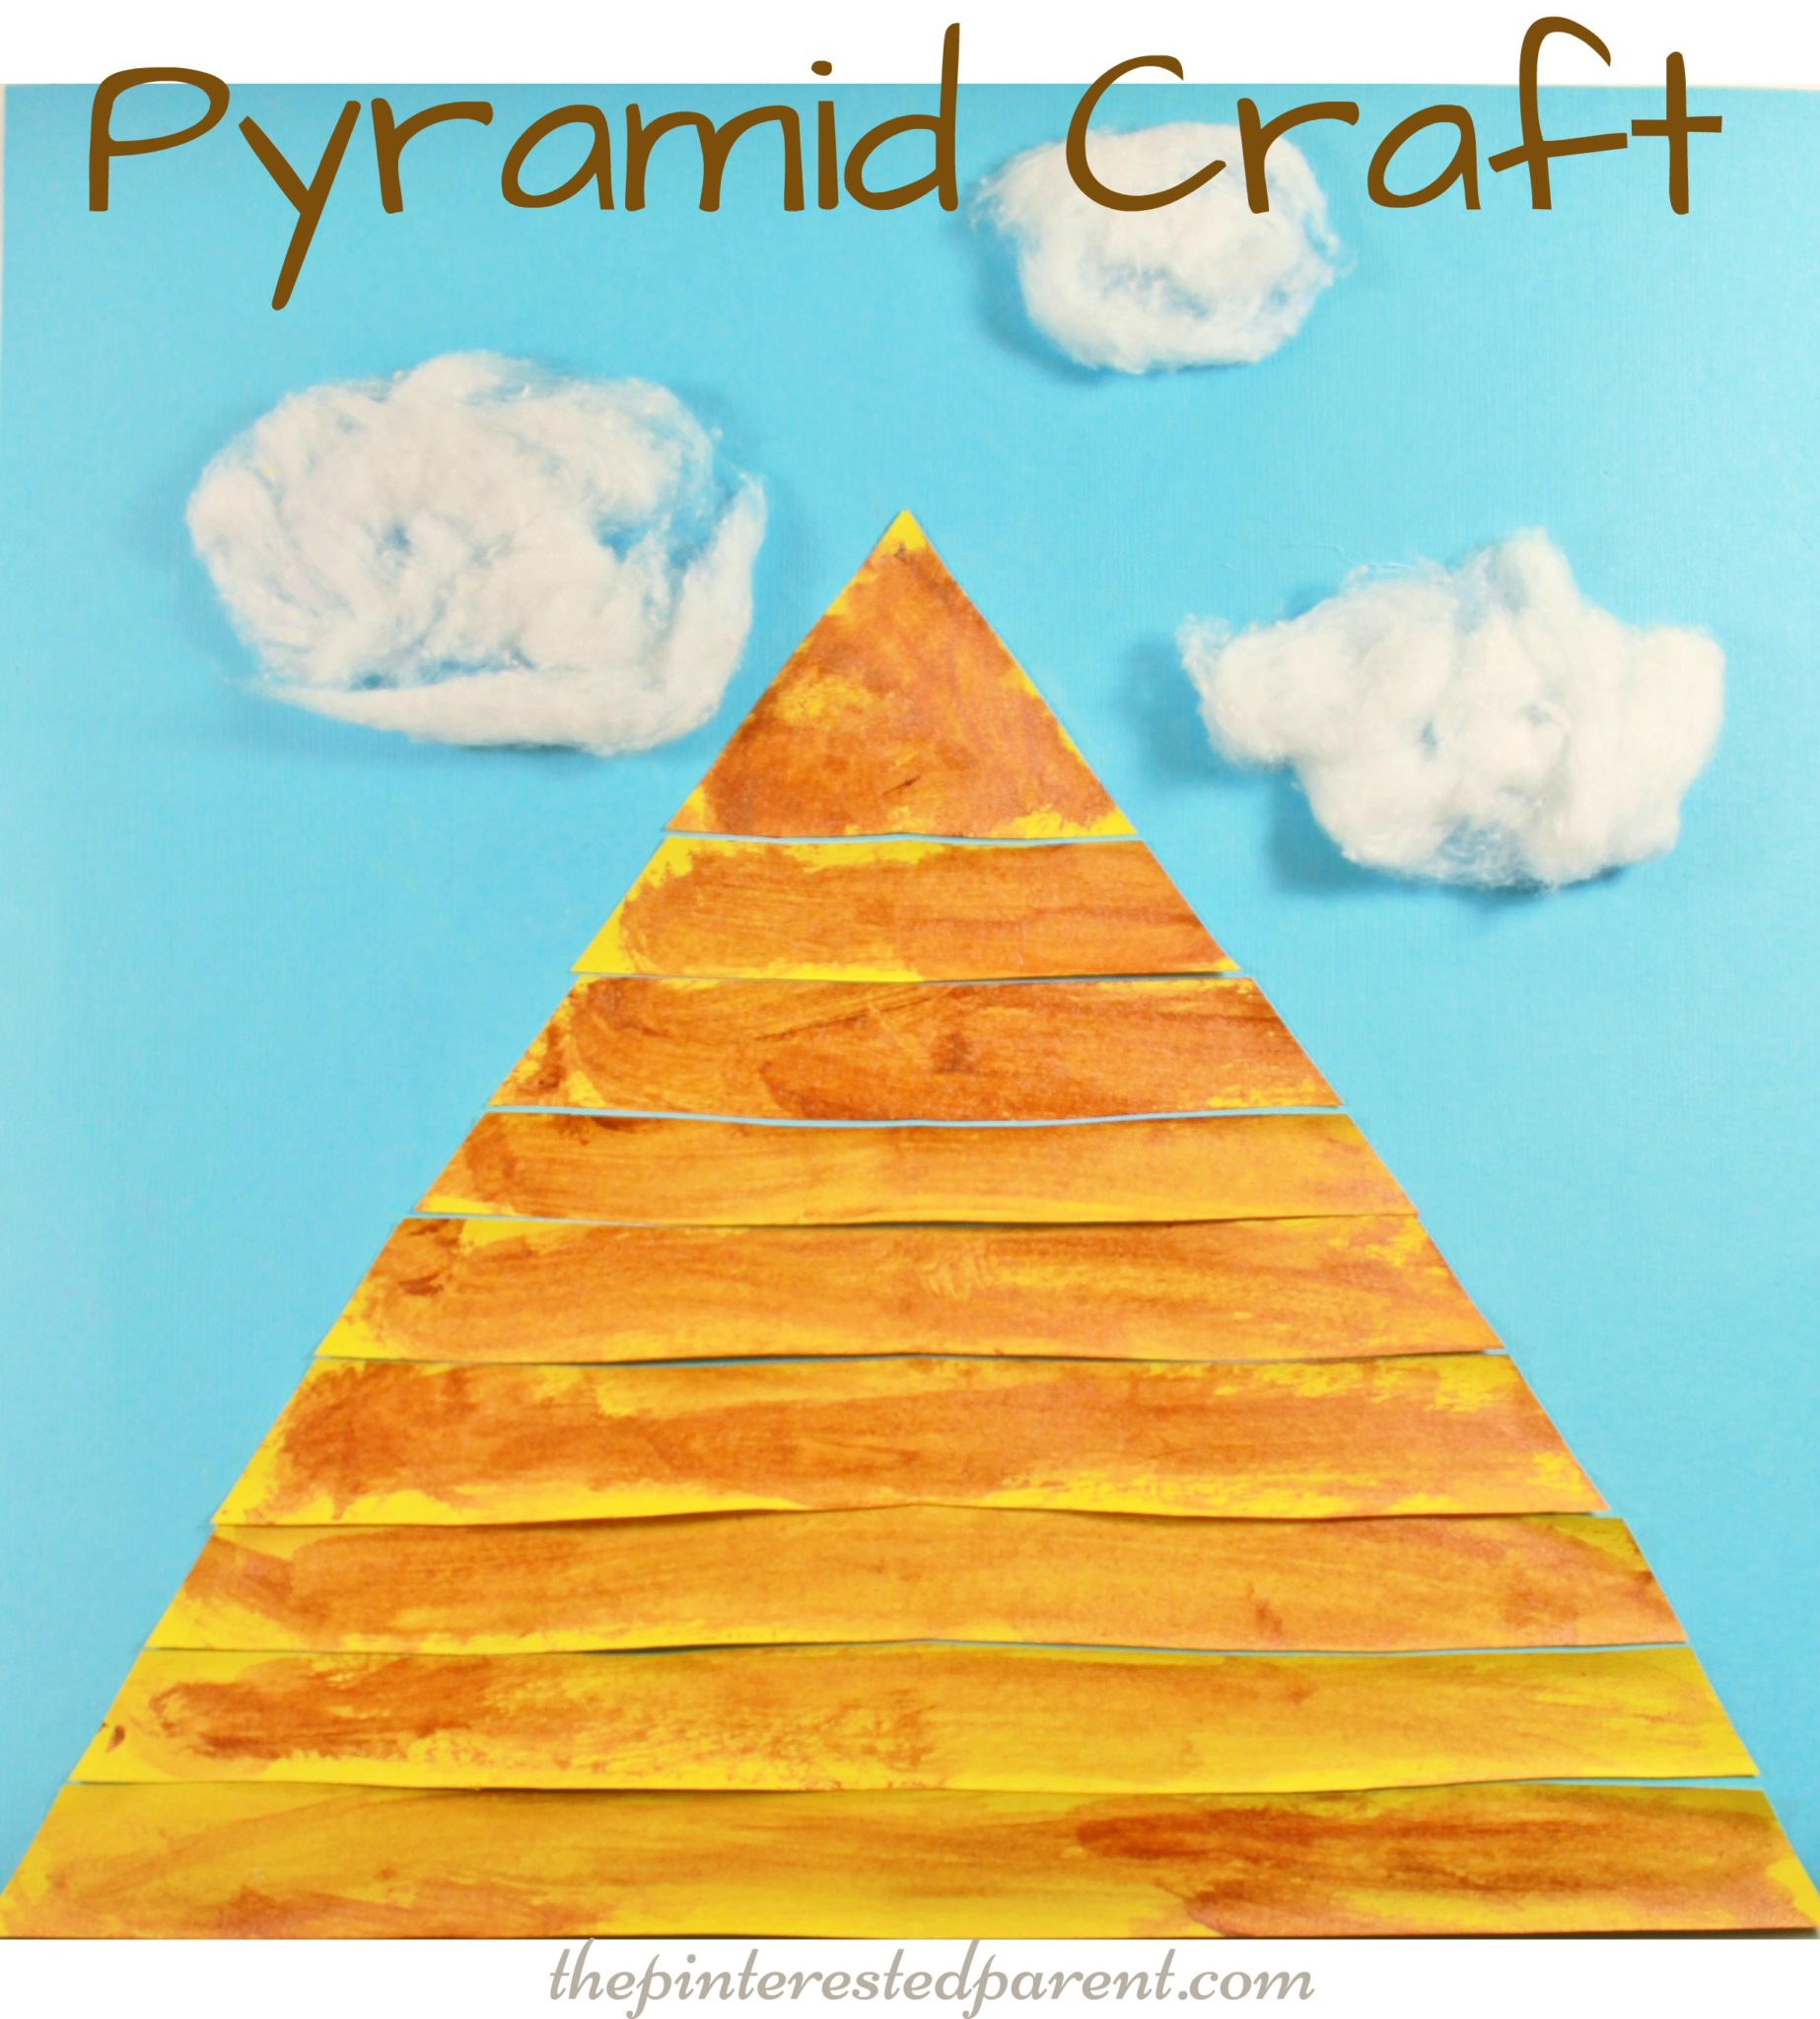 Egyptian pyramid craft the pinterested parent for Art and craft books for kids